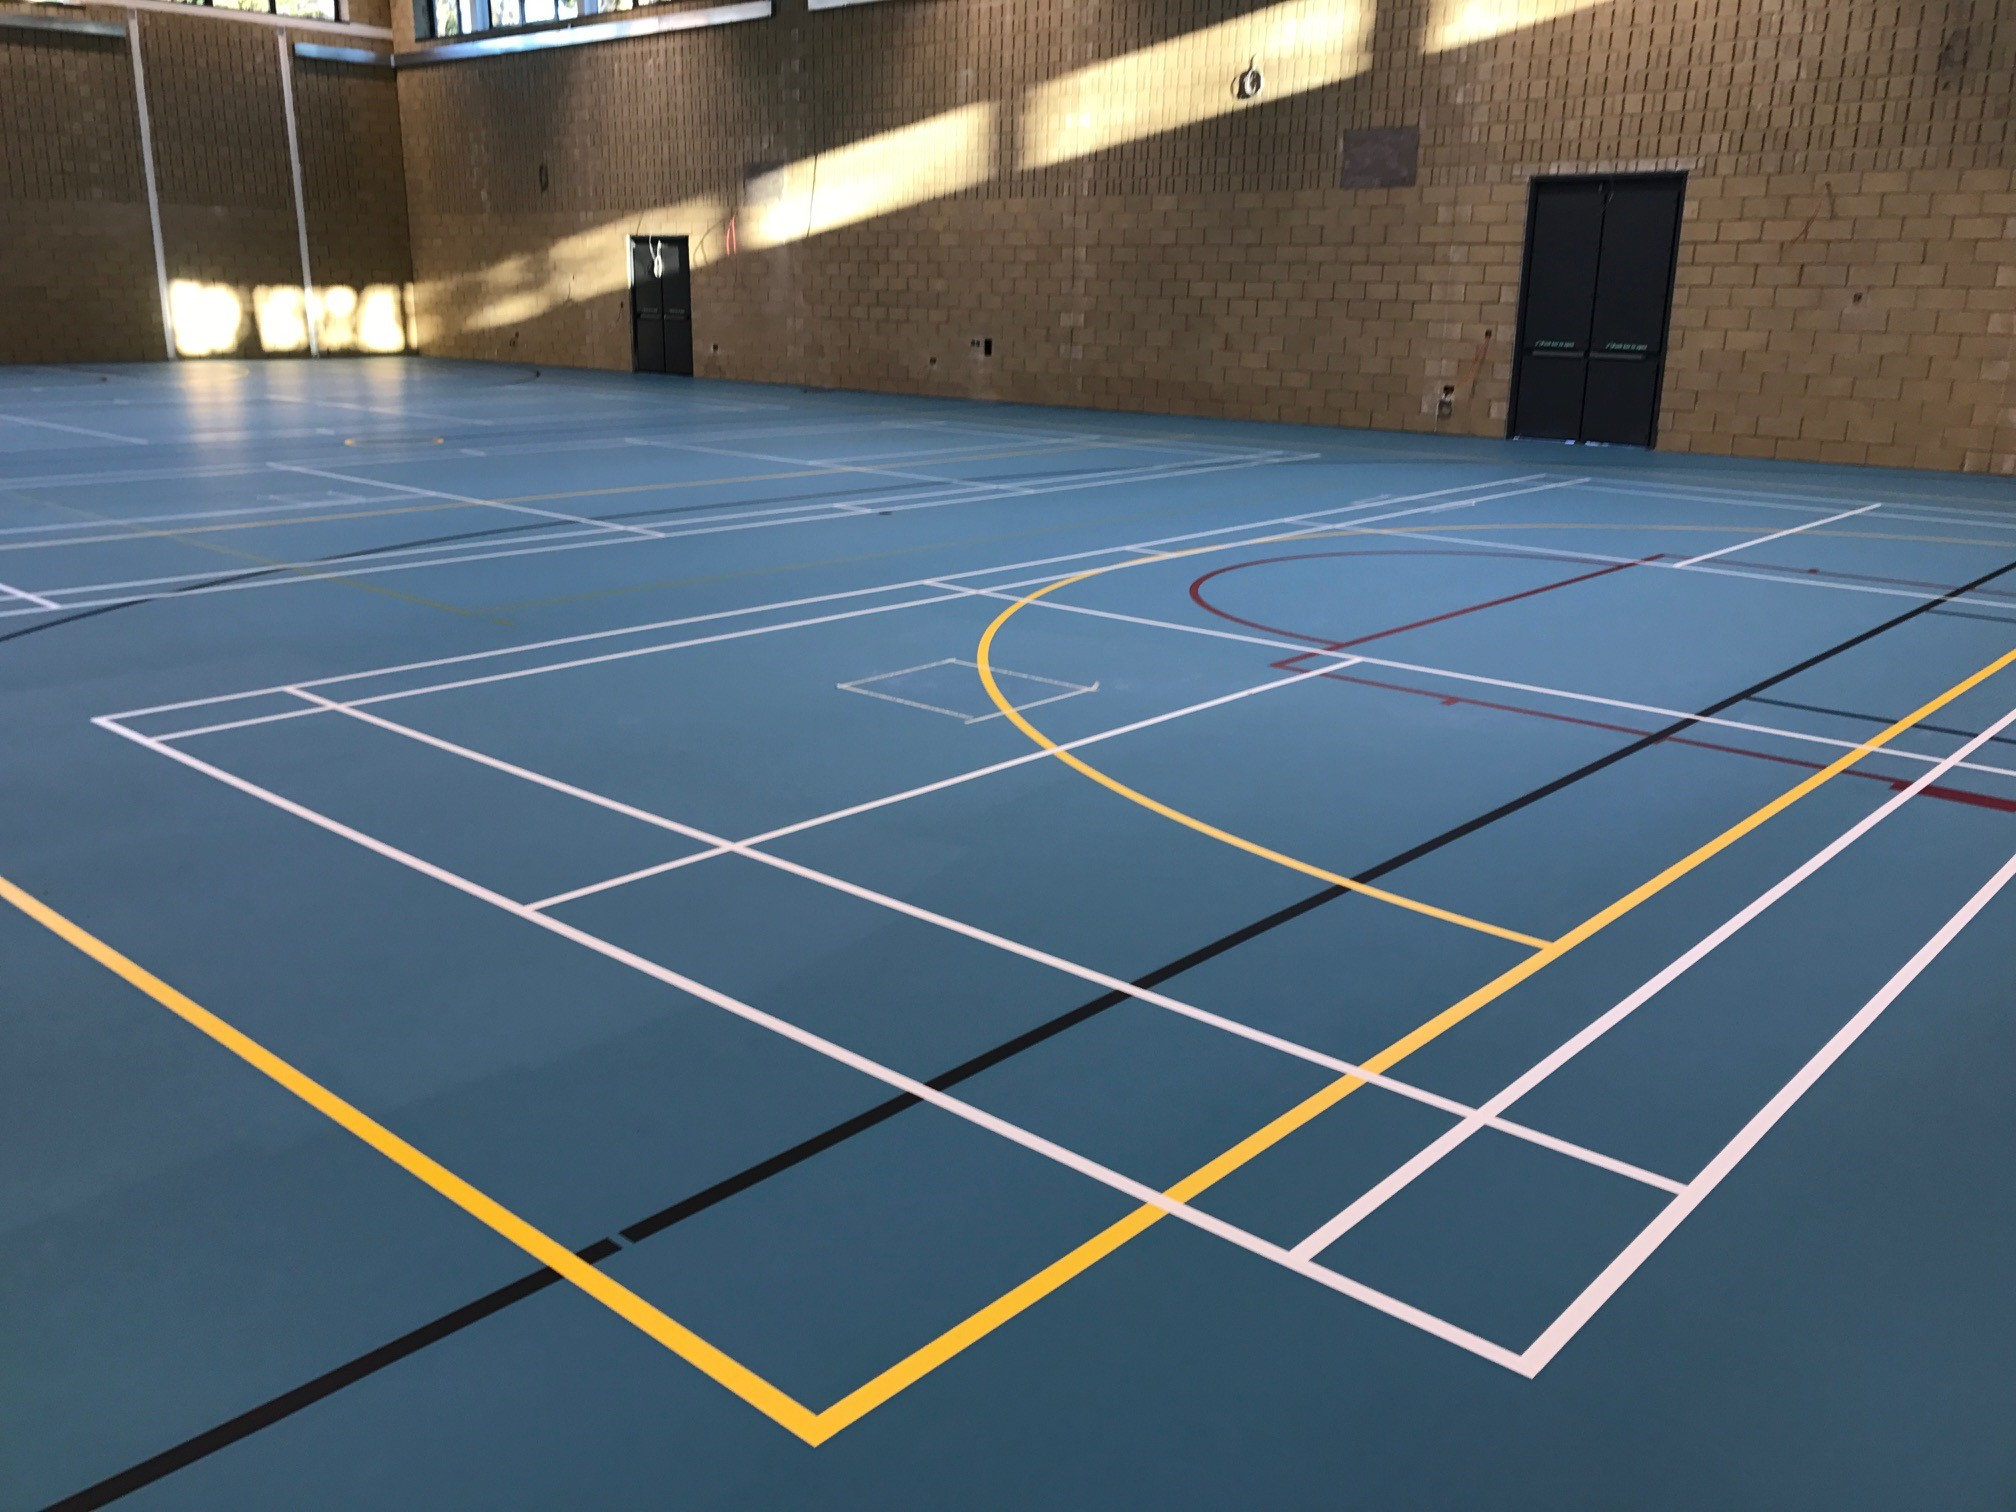 School sports hall blue Pulastic floor installation and court markings by Sports Surfaces UK